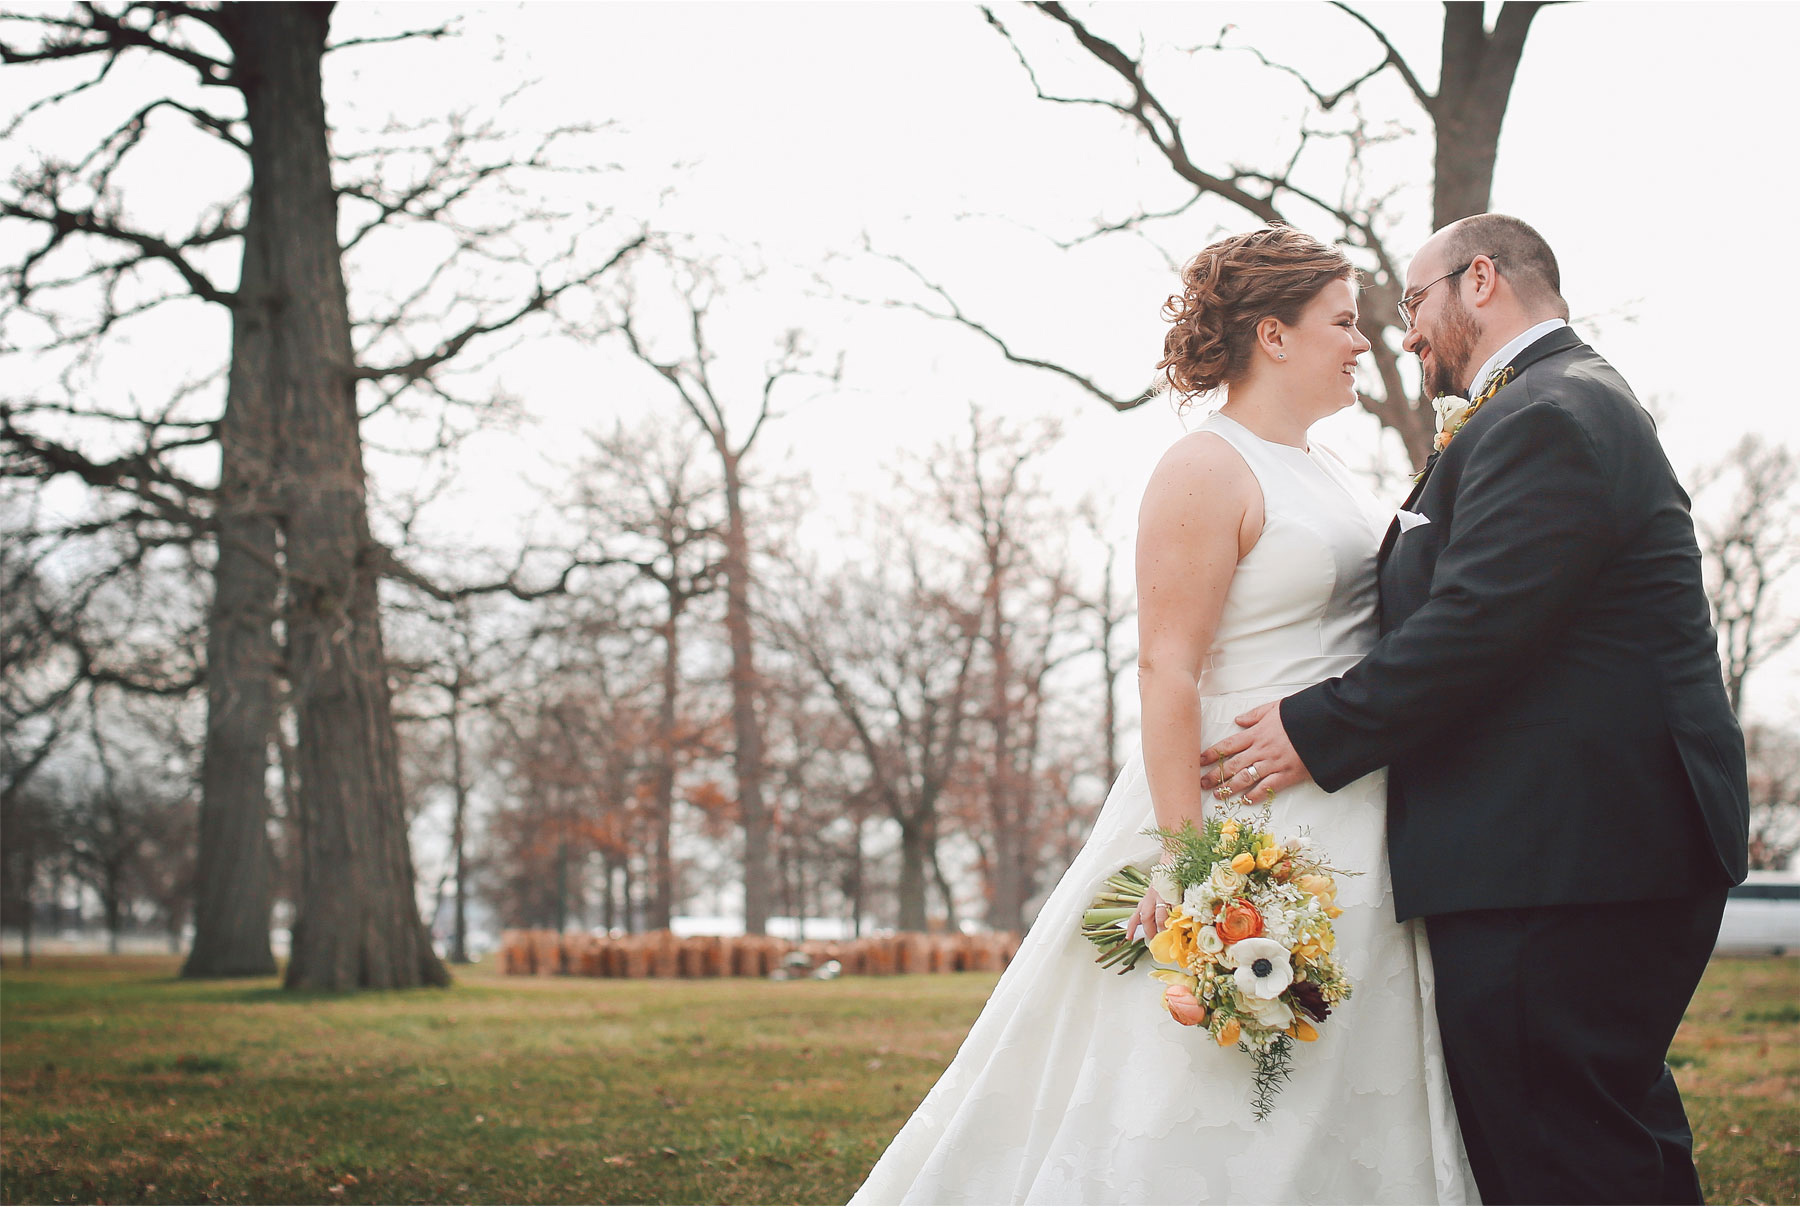 13-Michigan-Wedding-Photography-by-Vick-Photography-Janell-and-Anthony.jpg